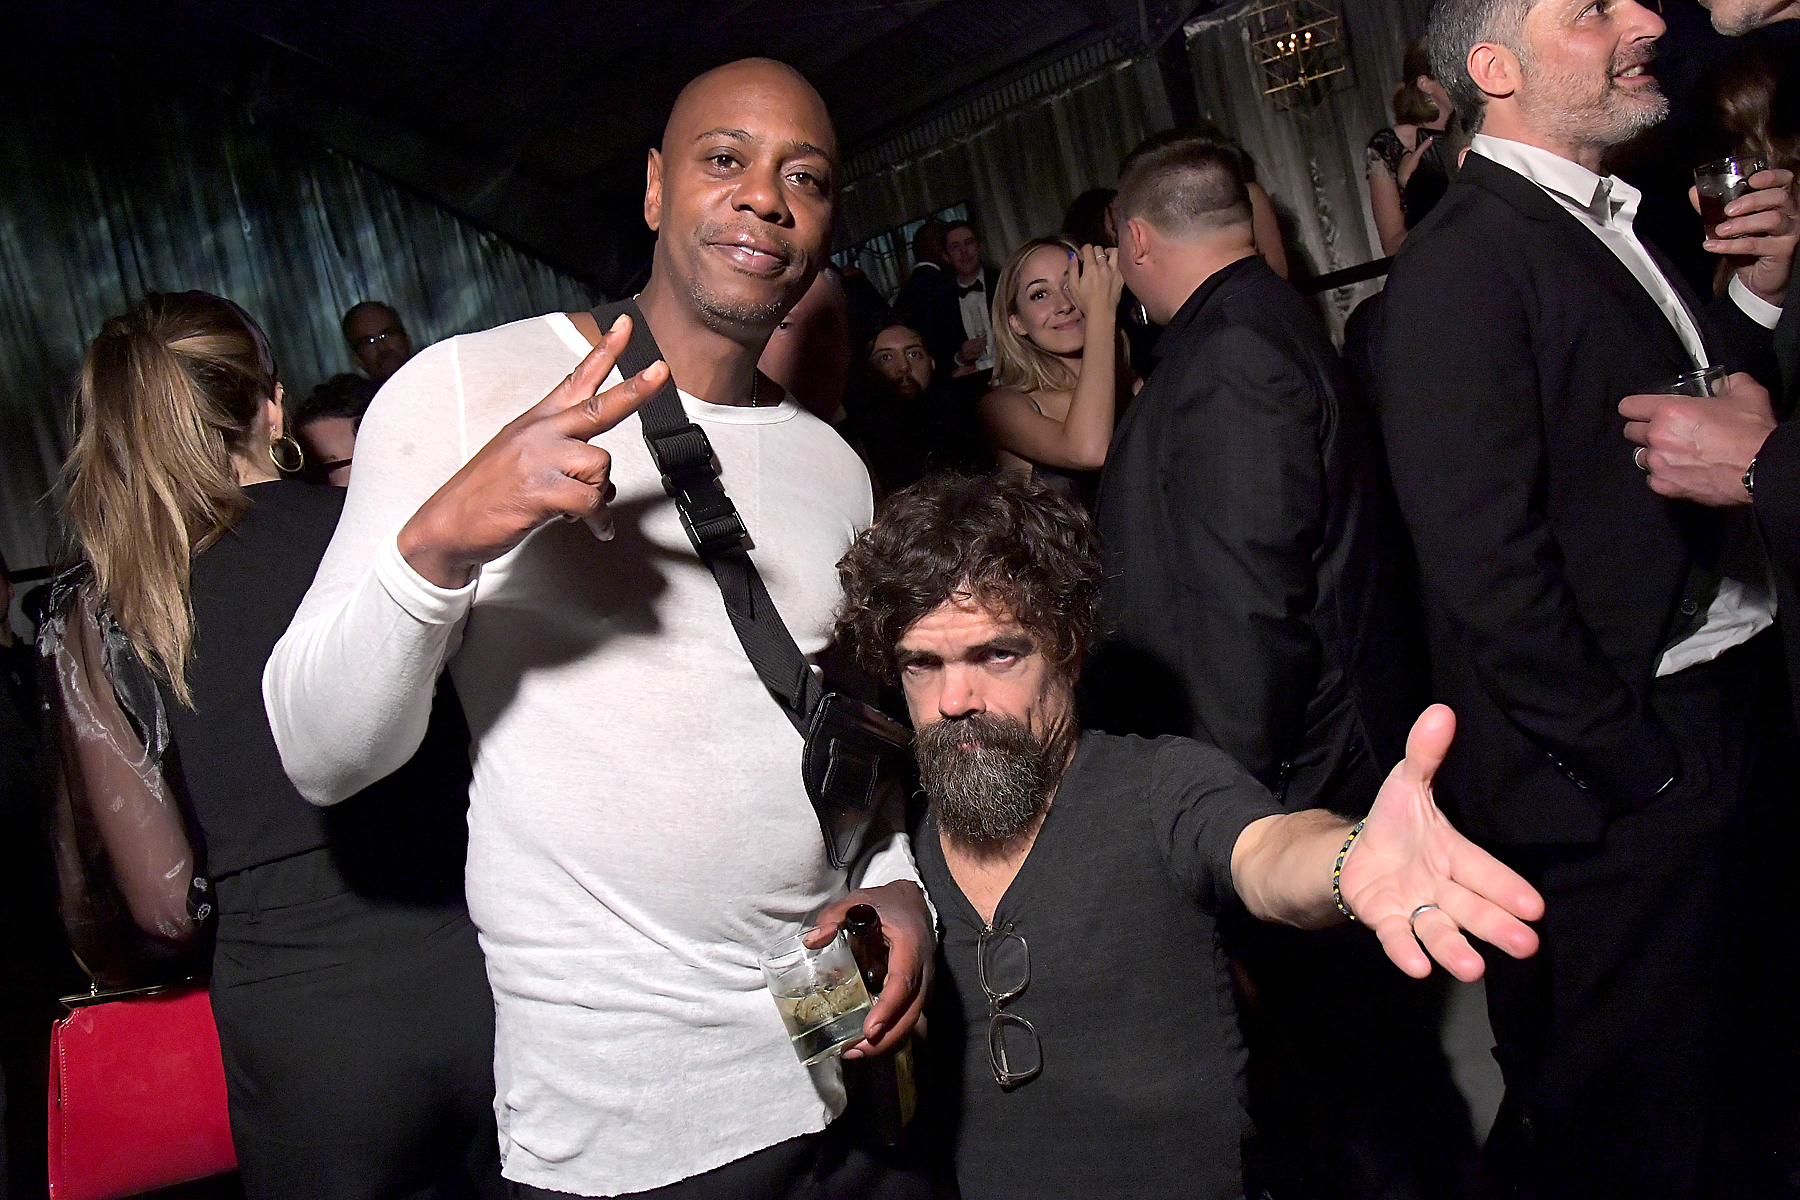 Dave Chappelle and Peter Dinklage